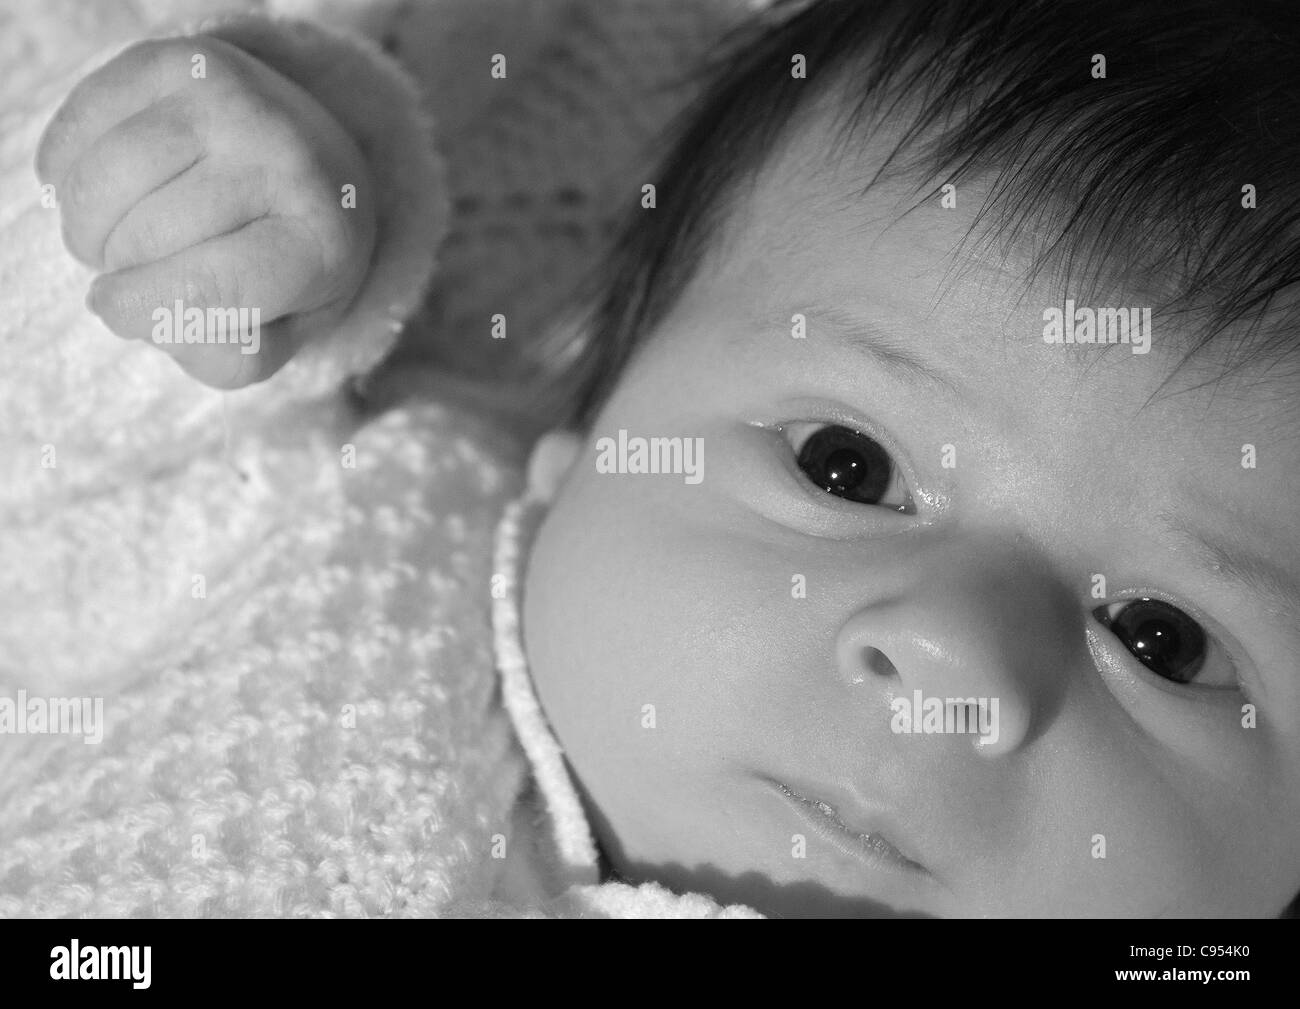 A wide awake, 5 week old baby. - Stock Image